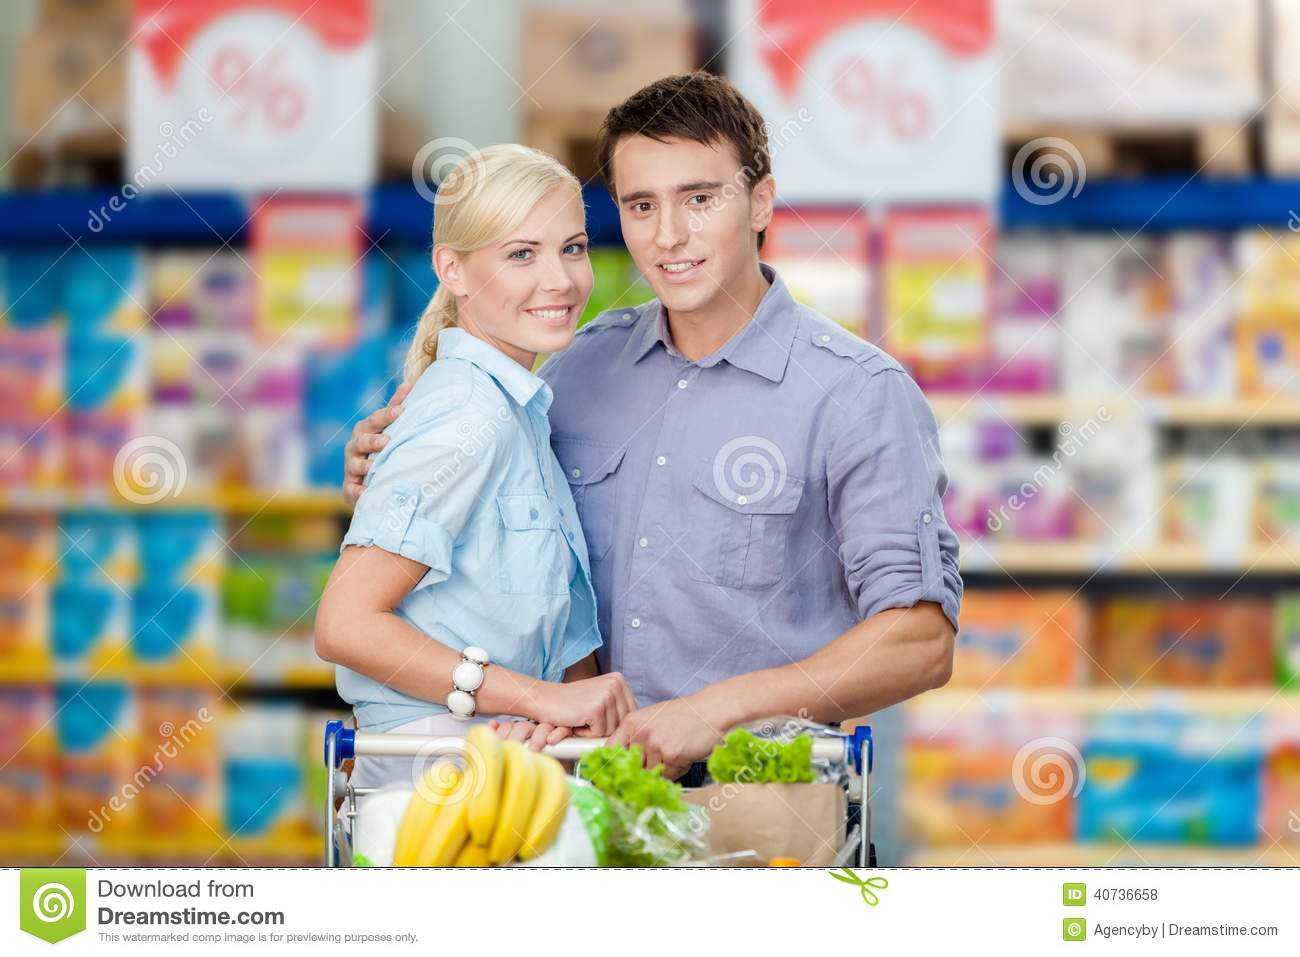 Couple In The Supermarket With Cart Full Of Food Stock Photo